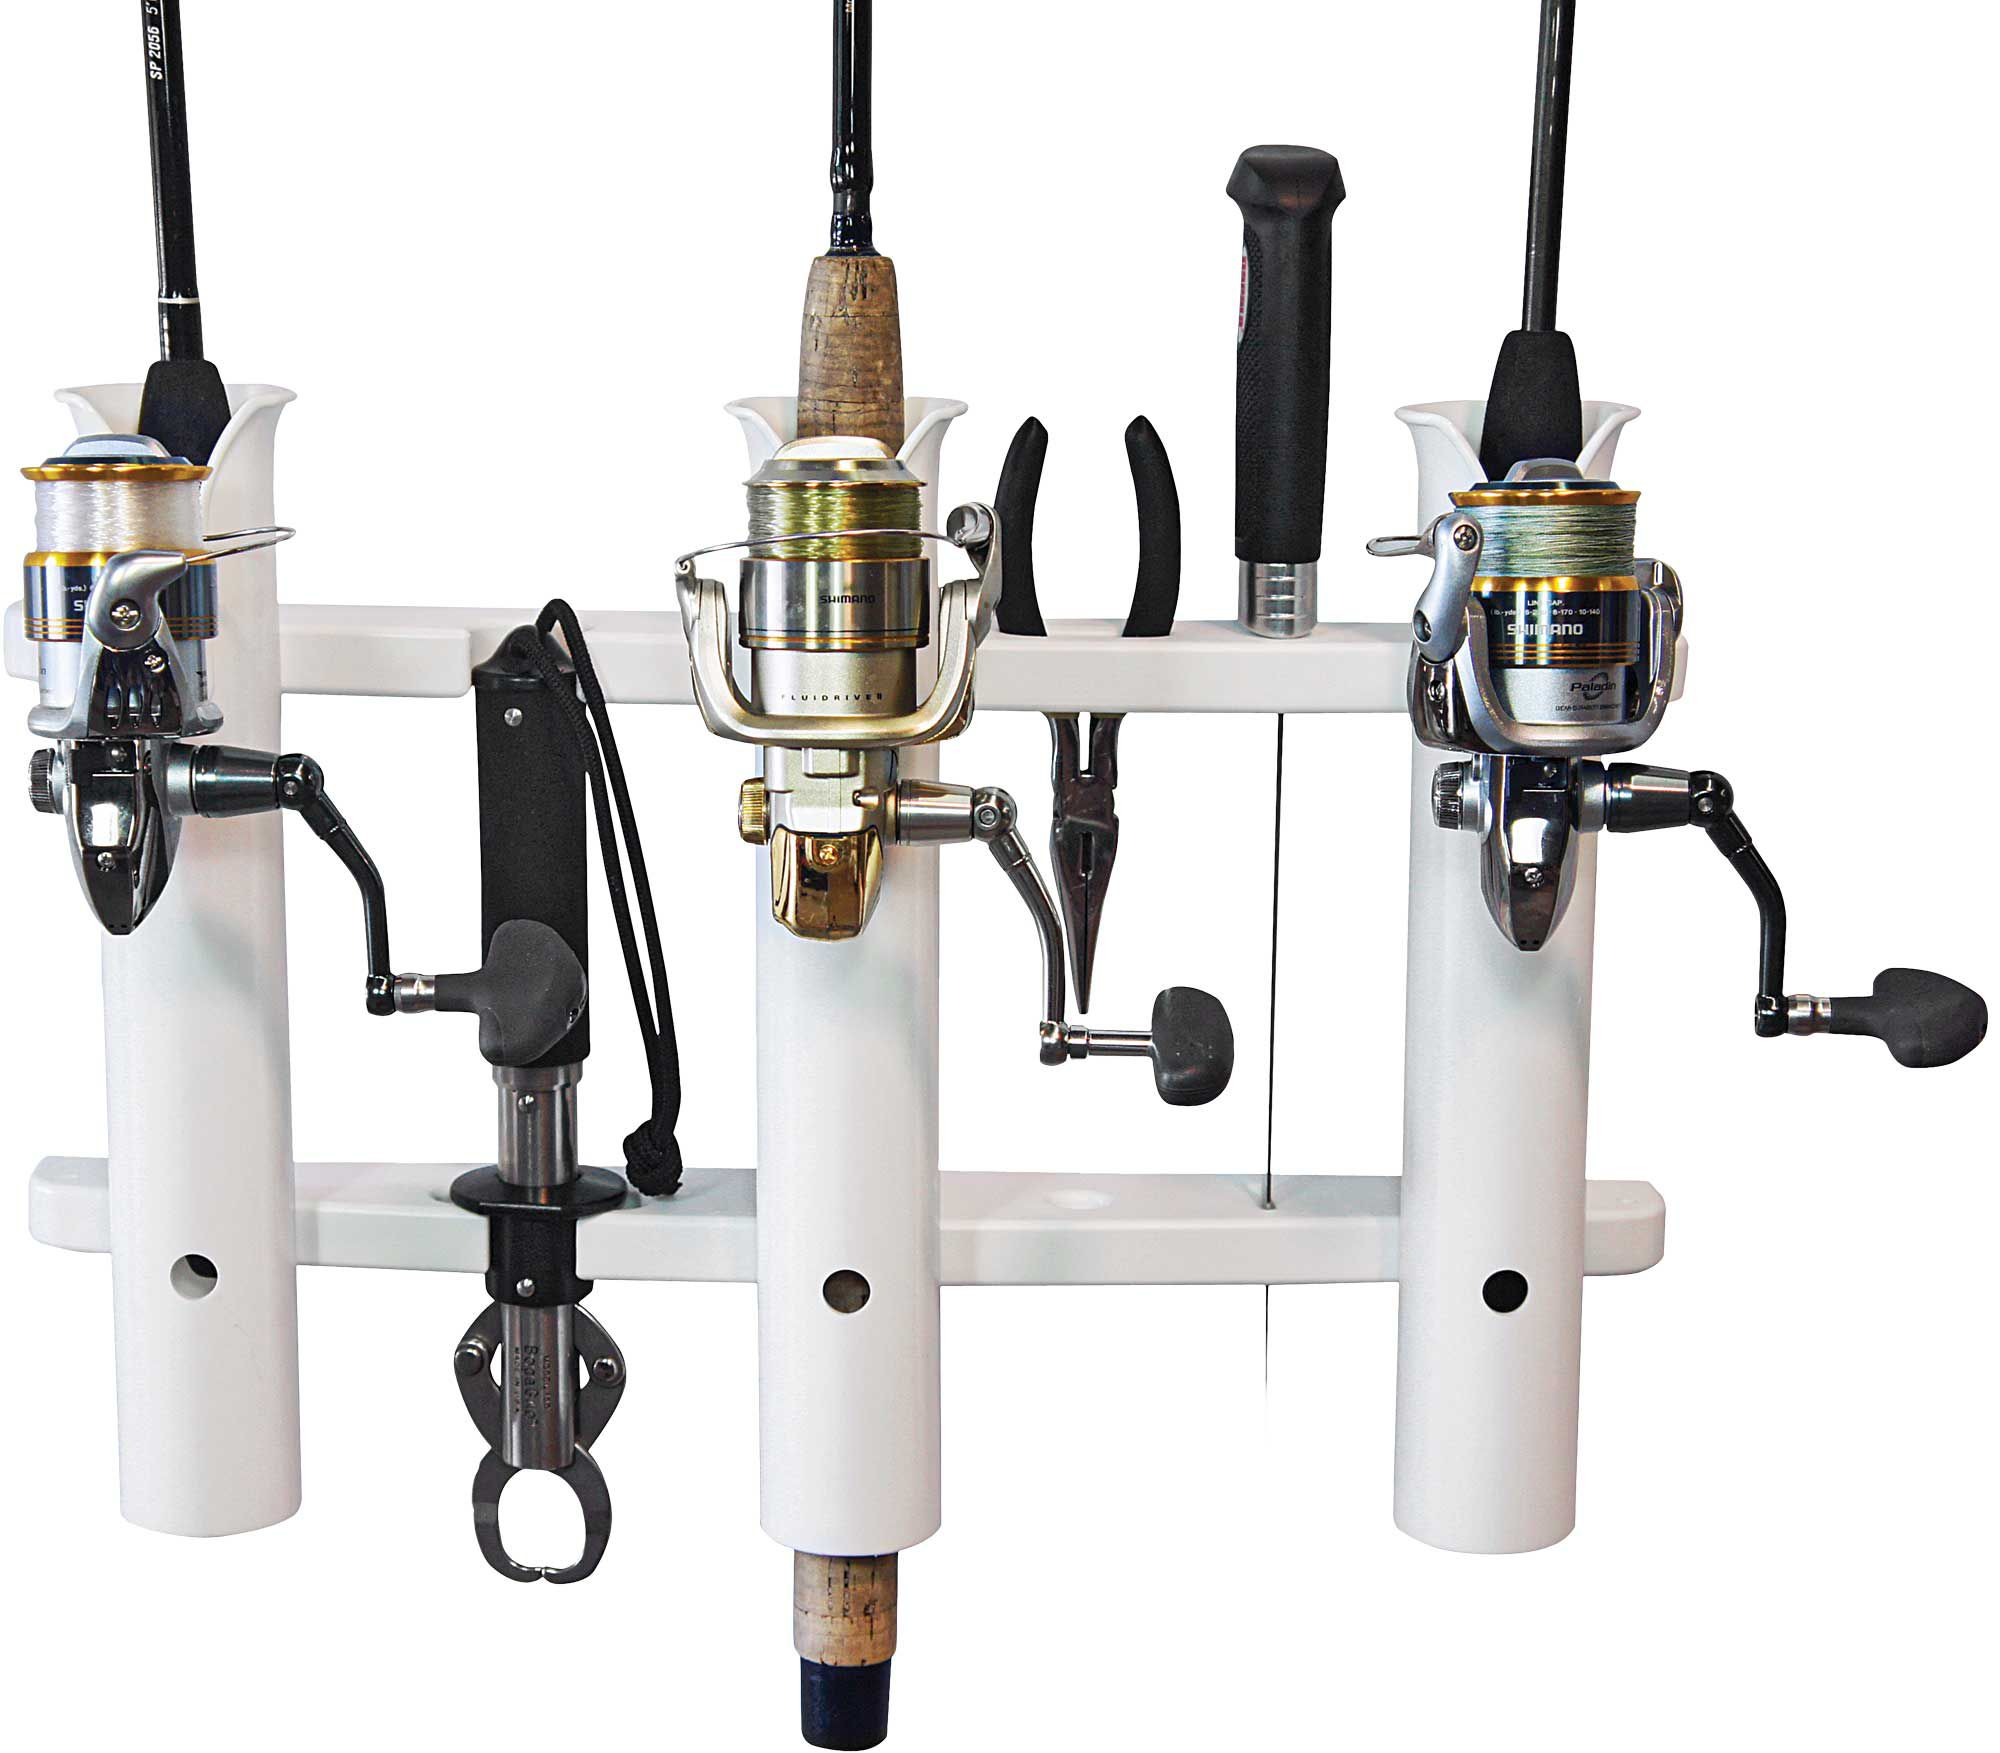 Vertical rod racks take up little room, and are easy to mount on a bulkhead or console.